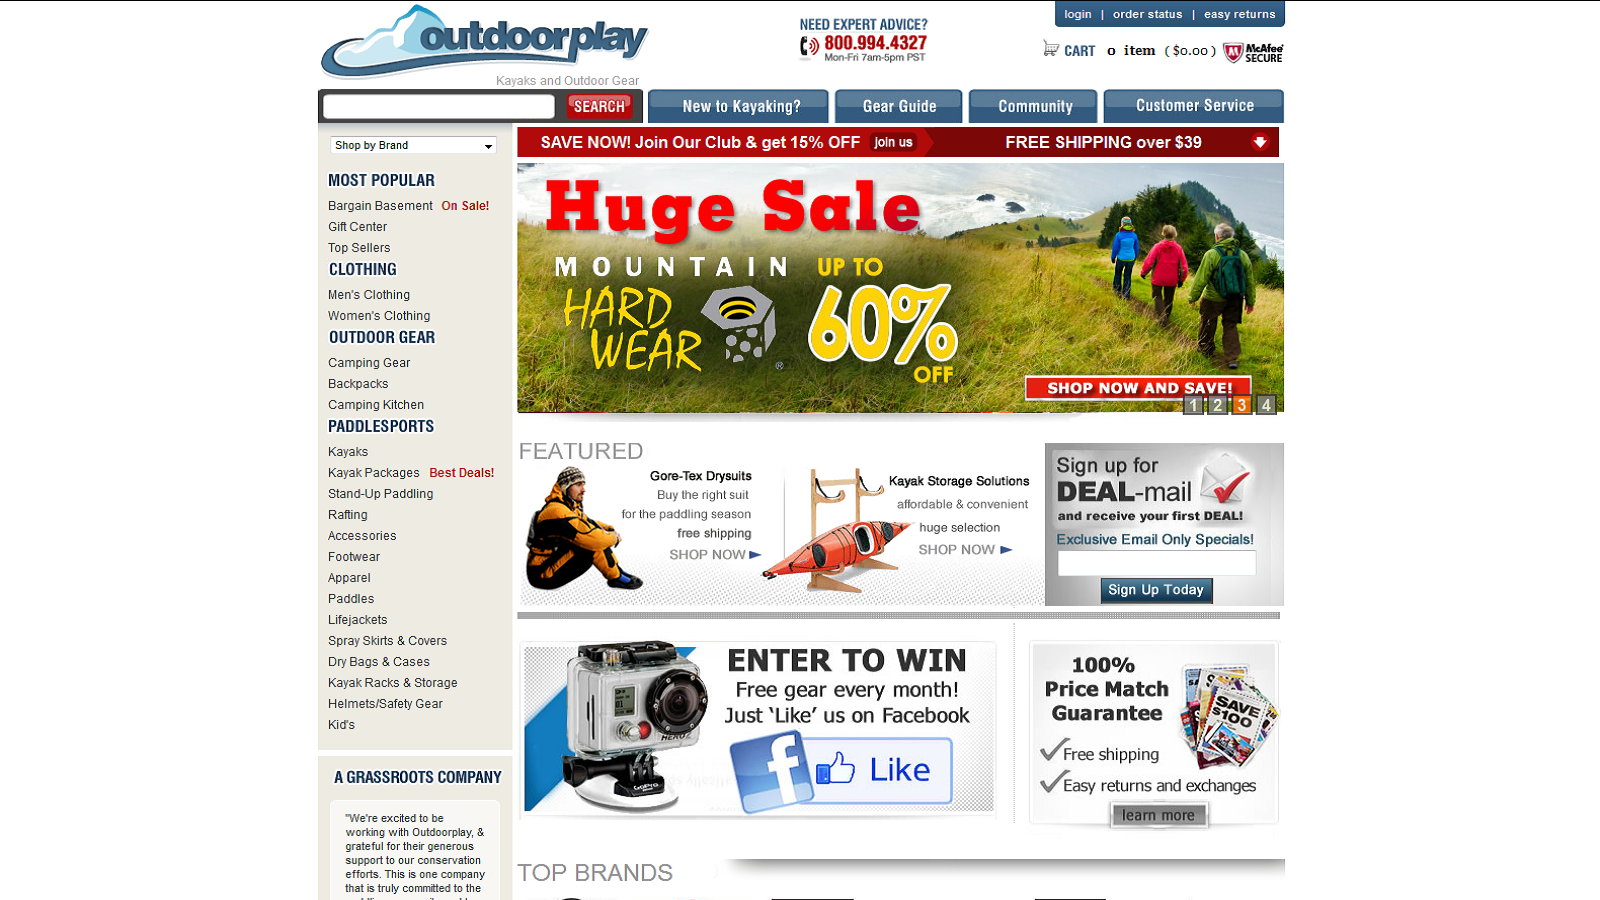 Where To Buy Outdoor Products Online